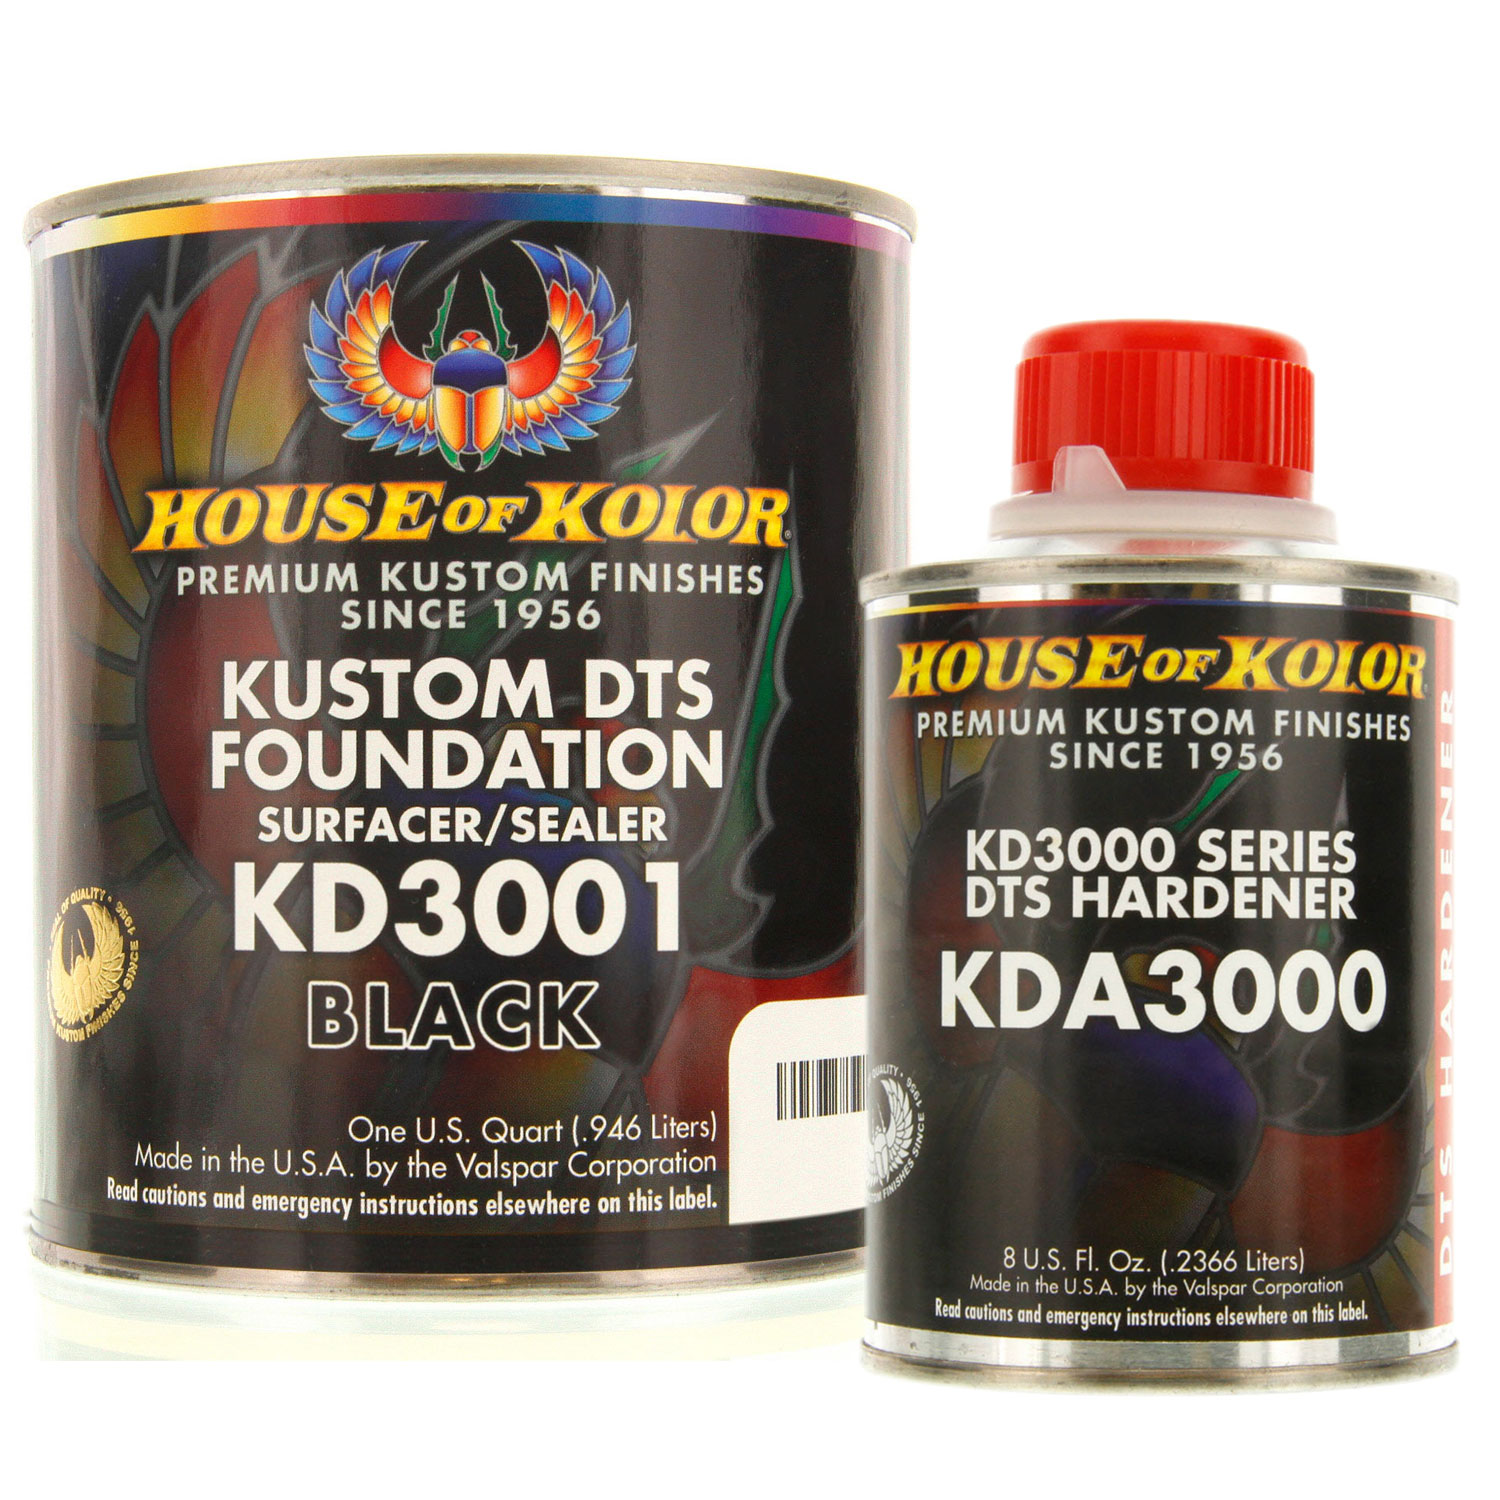 House of Kolor QUART KIT BLACK Color KD3001 DTS Surfacer / Sealer w/ Hardener